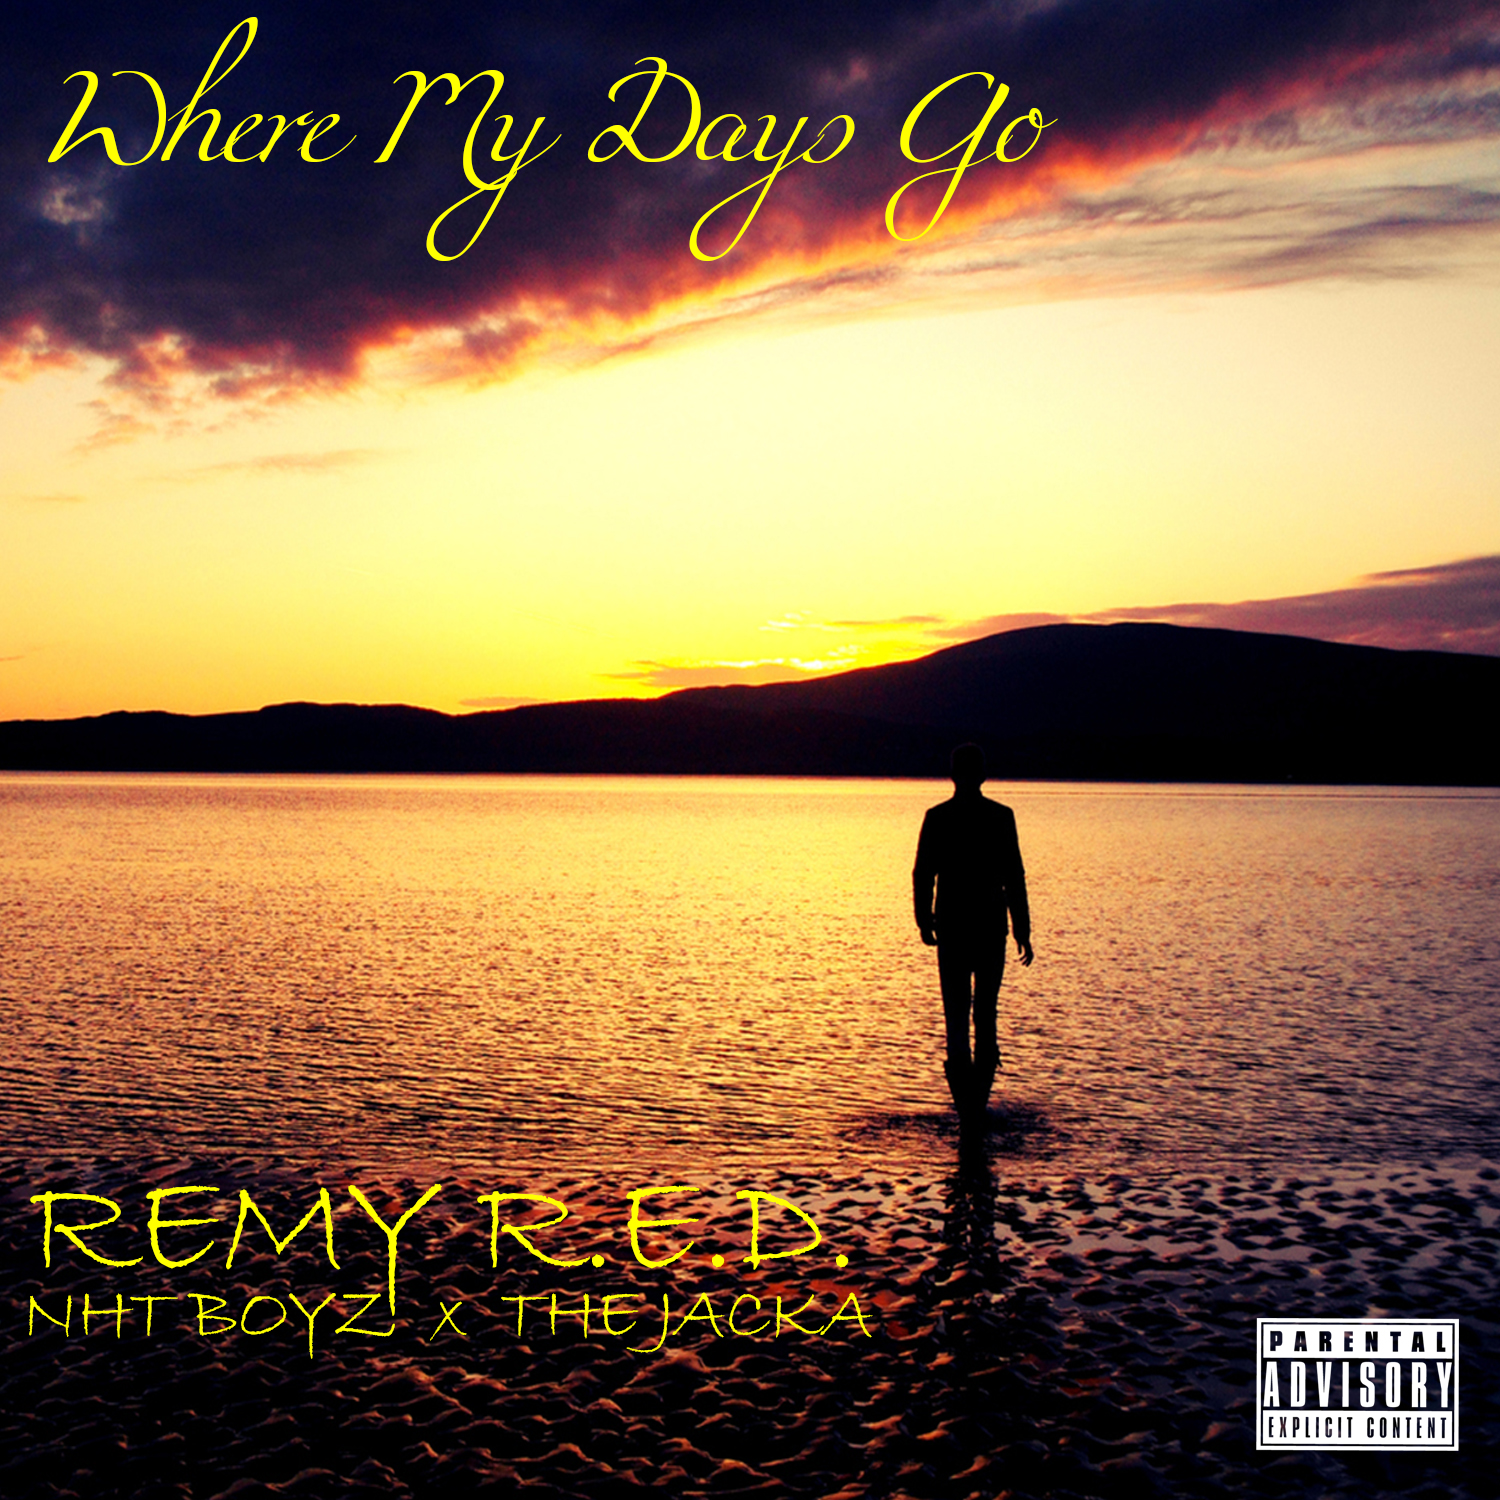 Remy R.E.D. ft. The Jacka & NhT BoyZ - Where My Days Go [Thizzler.com]